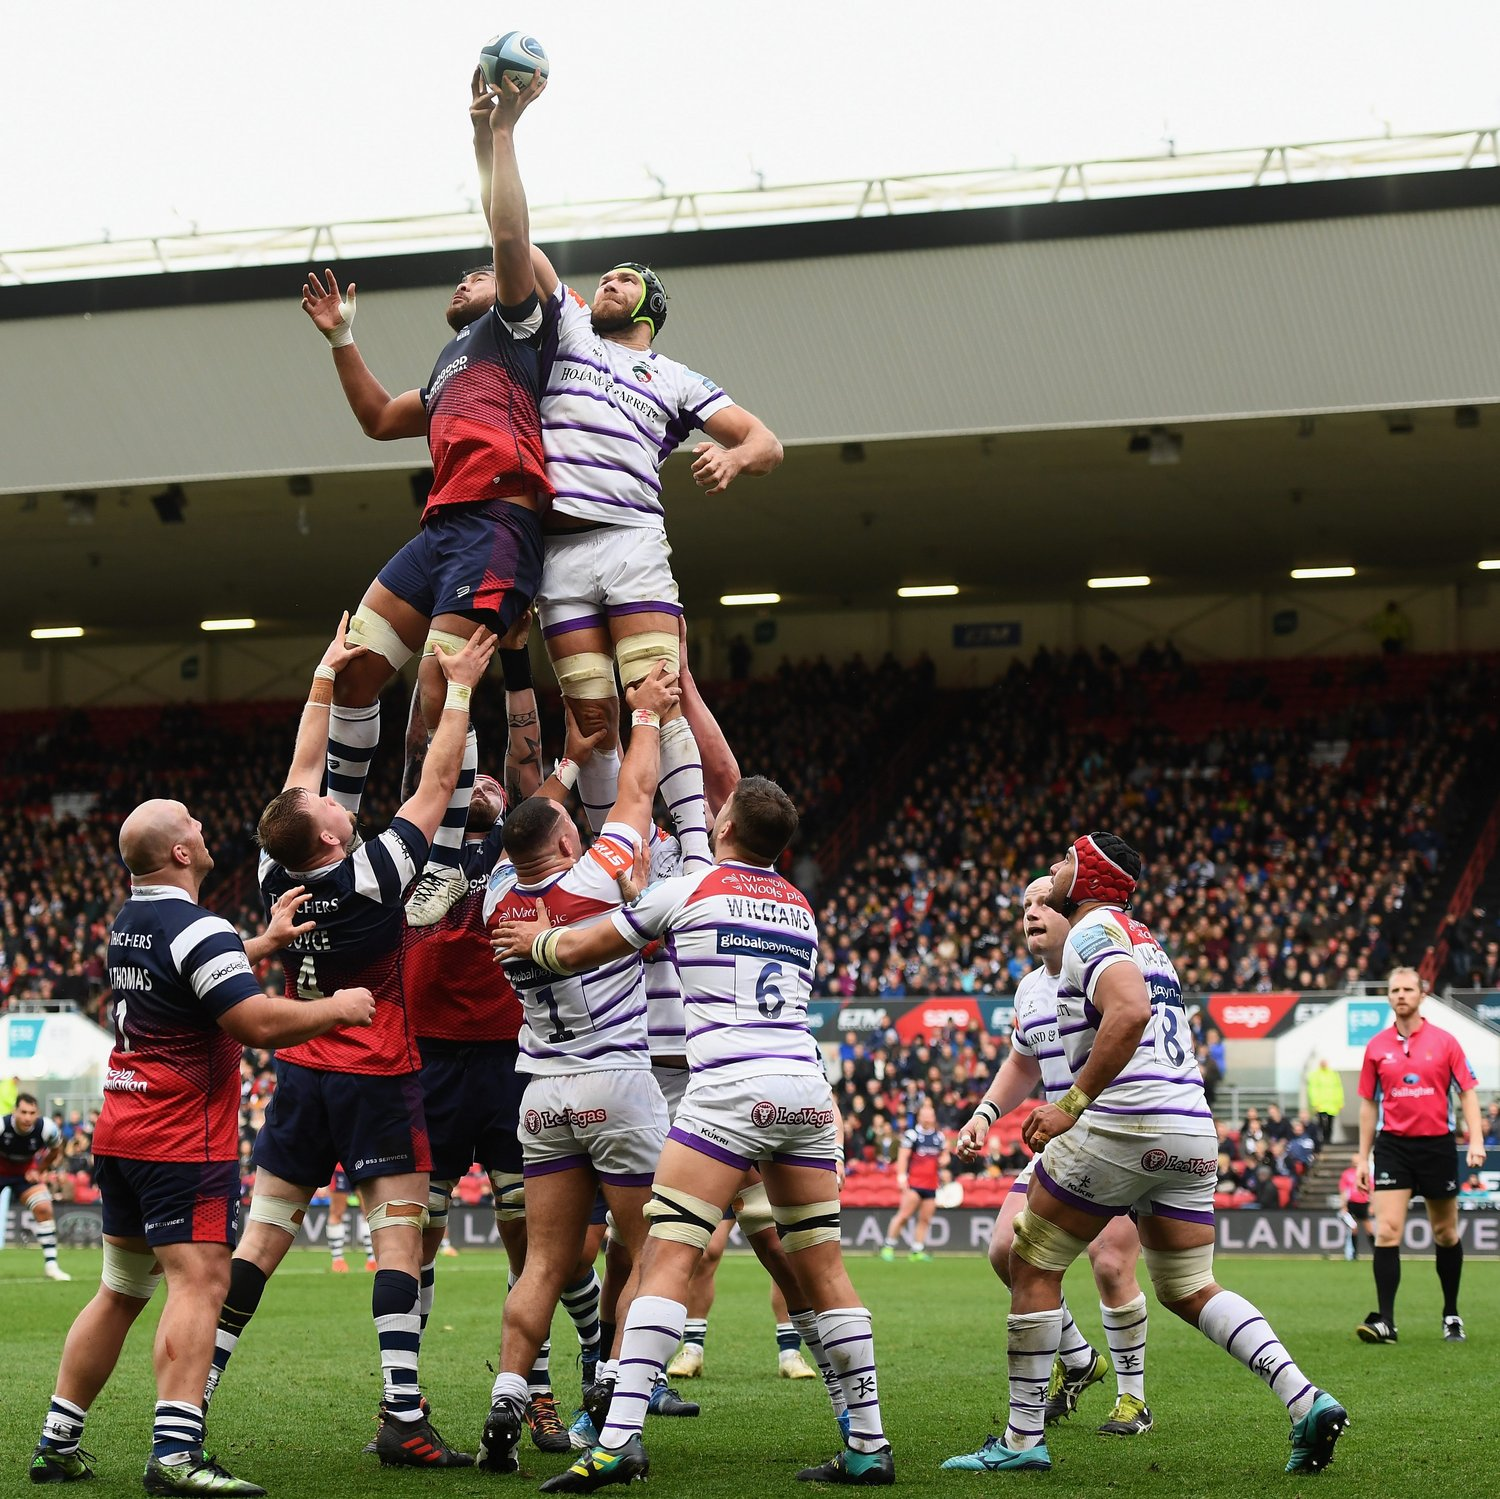 Bristol-Leicester Lineout